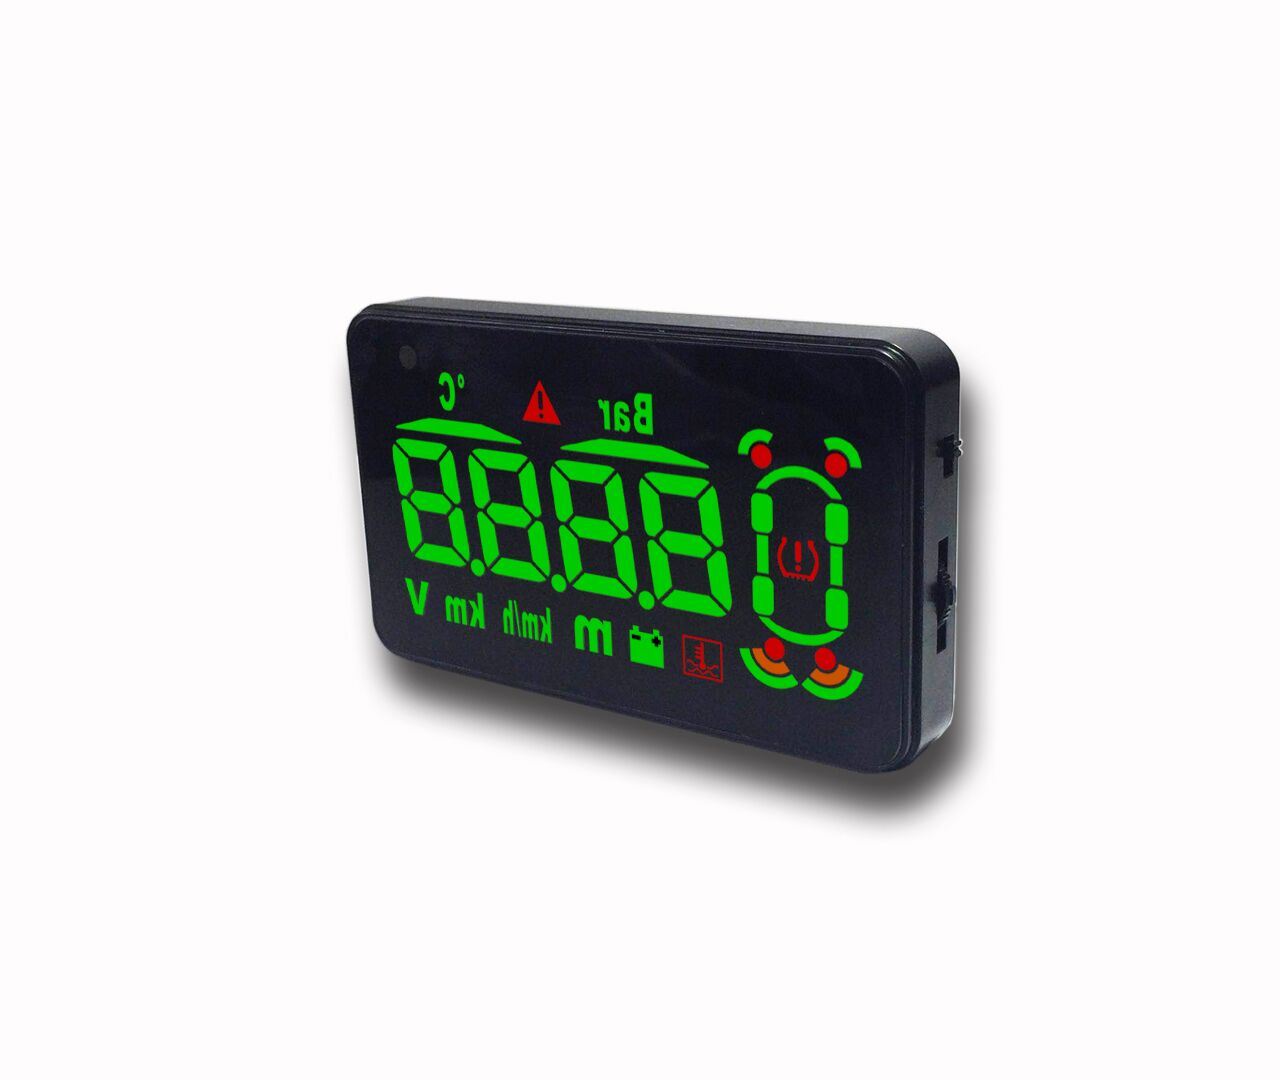 OBD-II Head-up Display